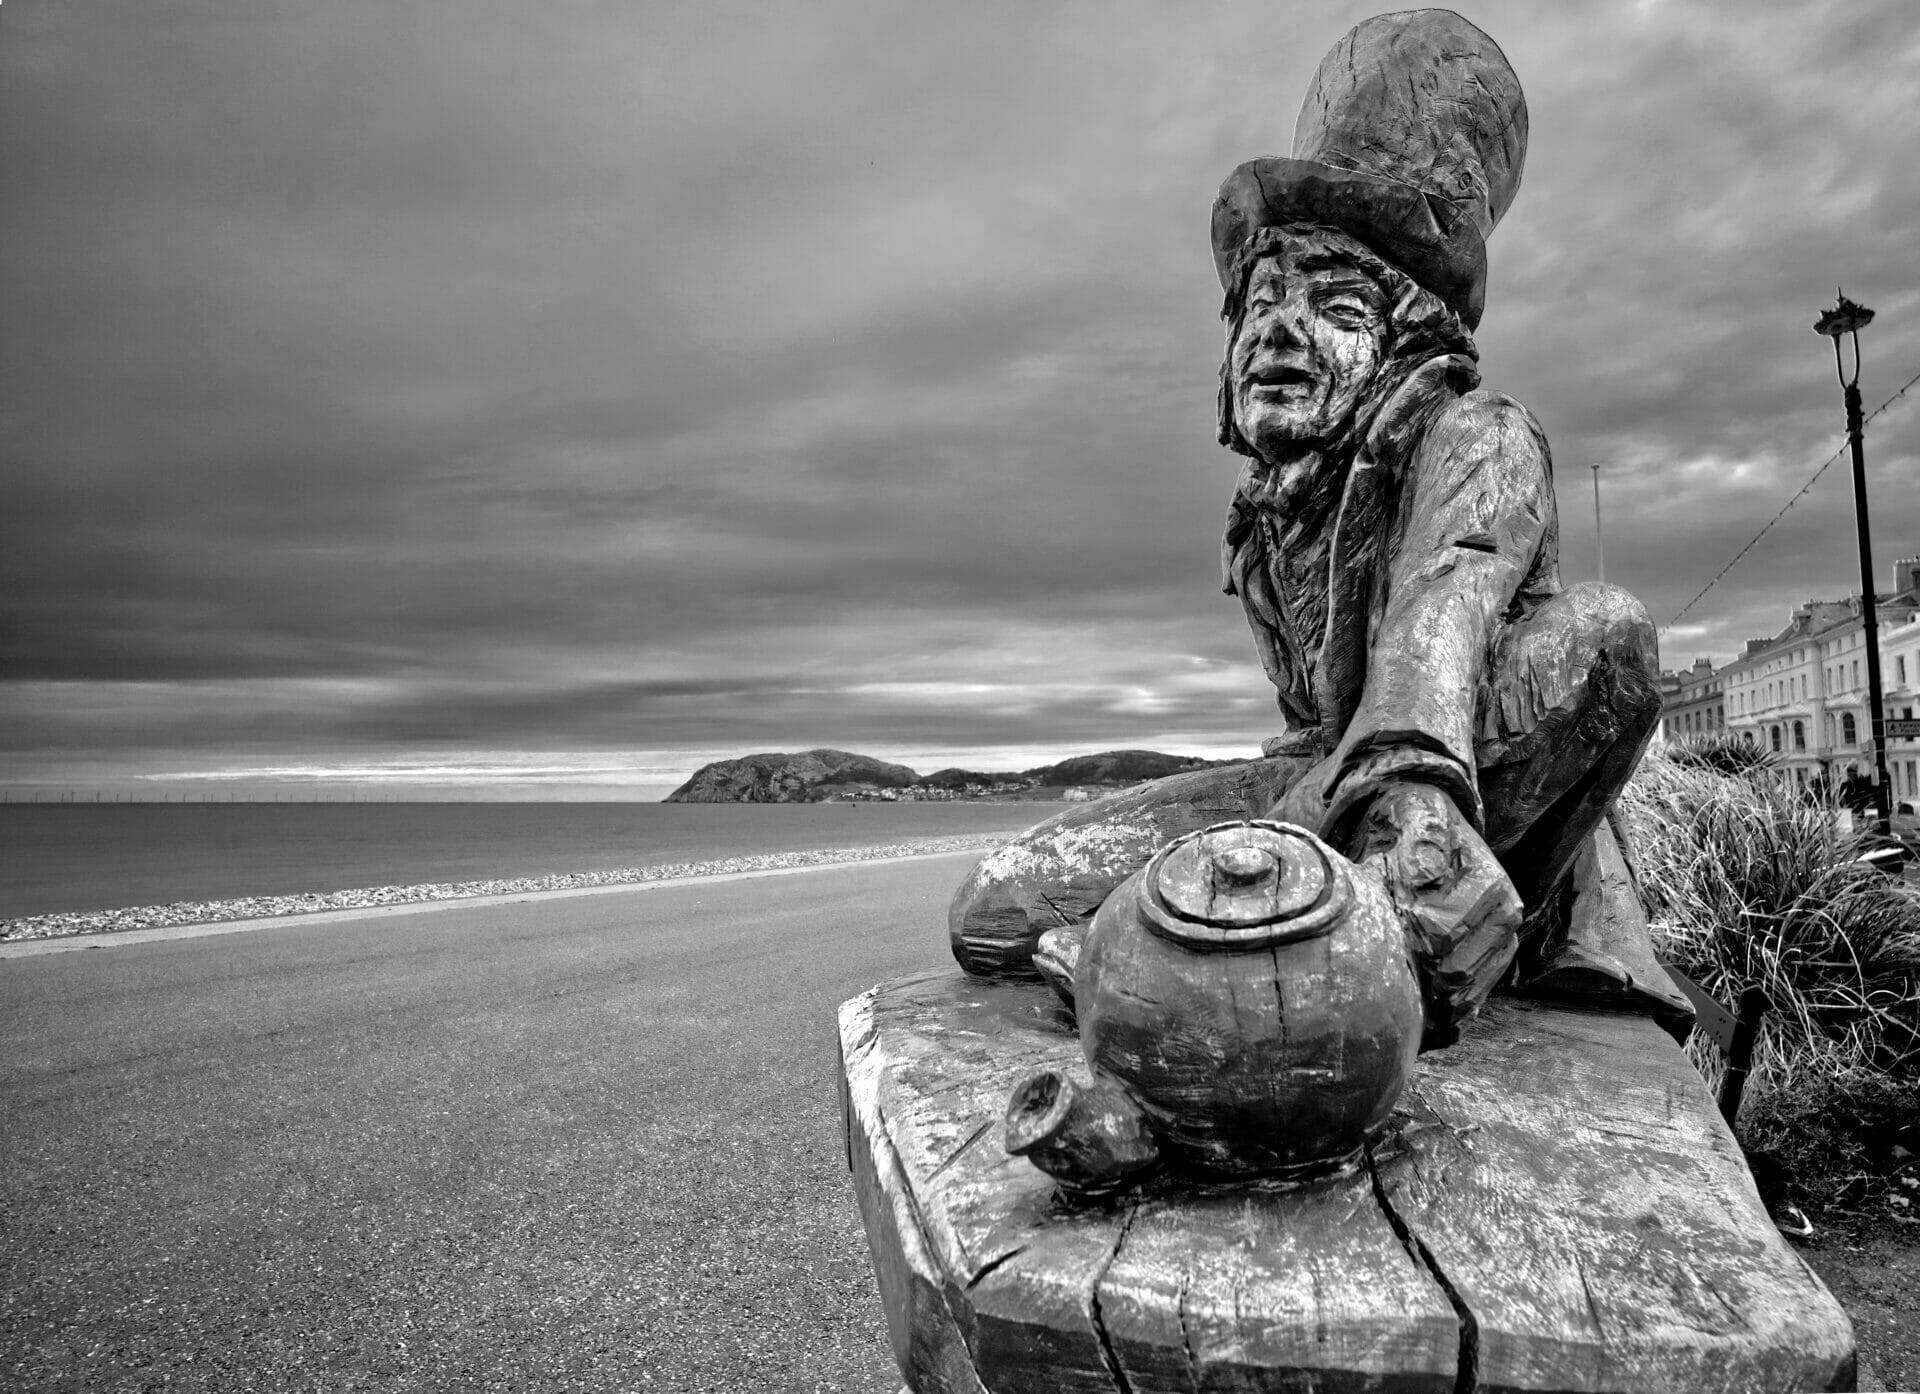 Black & White Photo of Mad Hatter Statue on the Llandudno Prom in North Wales. Taken on a Welshot Imaging Photographic Academy Event by Victoria smith